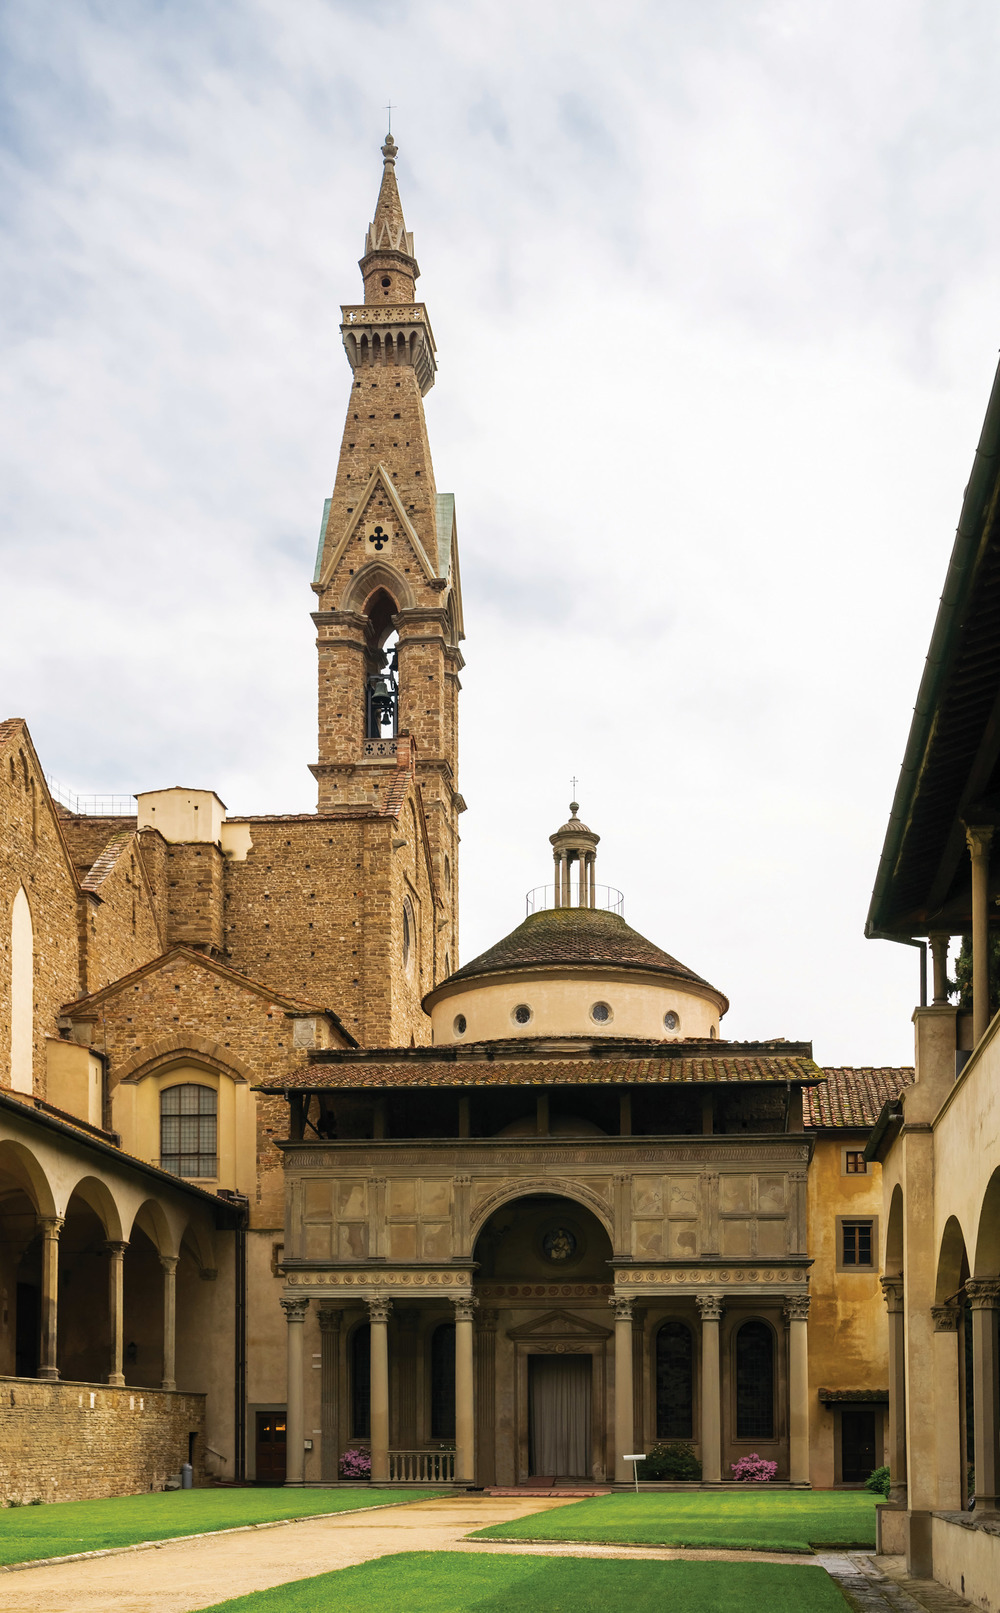 Influenced by humanism, the Pazzi Chapel in Florence embodies a simple elegance meant to encourage, not overwhelm, the monks who studied there.(Ralf Siemieniec / Shutterstock.com)